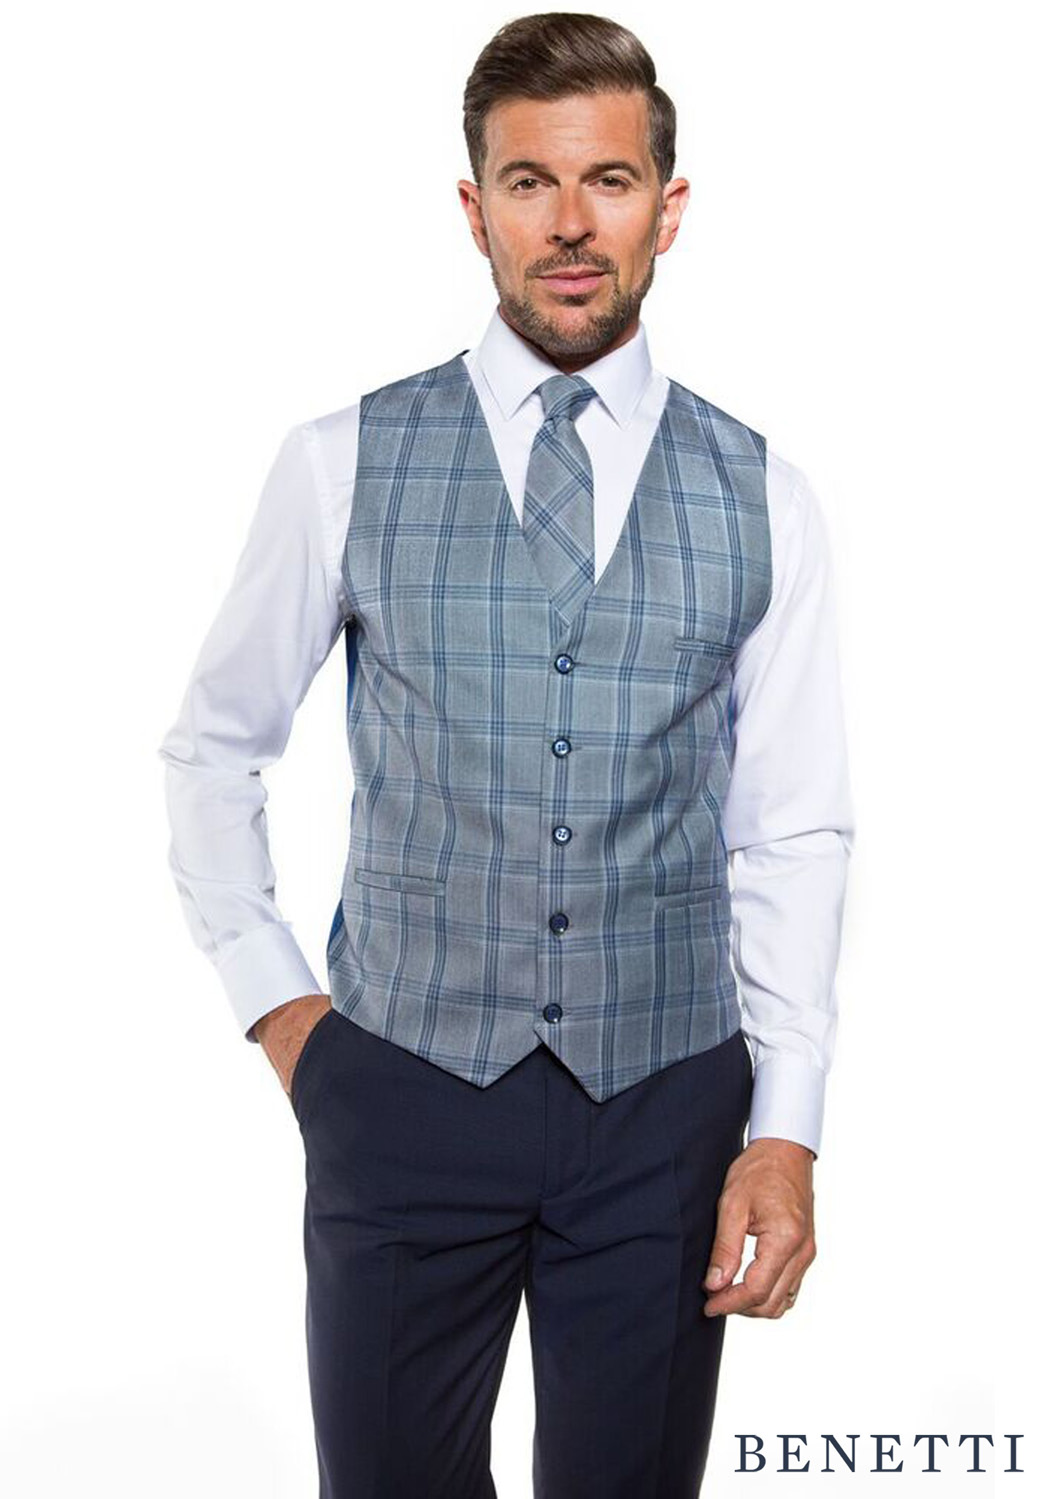 animeforum.cf: blue suit vest men. From The Community. QUALITY MATERIAL - This Men's Suit Dress Vests Waistcoat with high Cyparissus Mens Vest Waistcoat Men's Suit Dress Vest for Men Tuxedo Vest. by Cyparissus. $ - $ $ 14 $ 22 99 Prime. FREE Shipping on eligible orders.